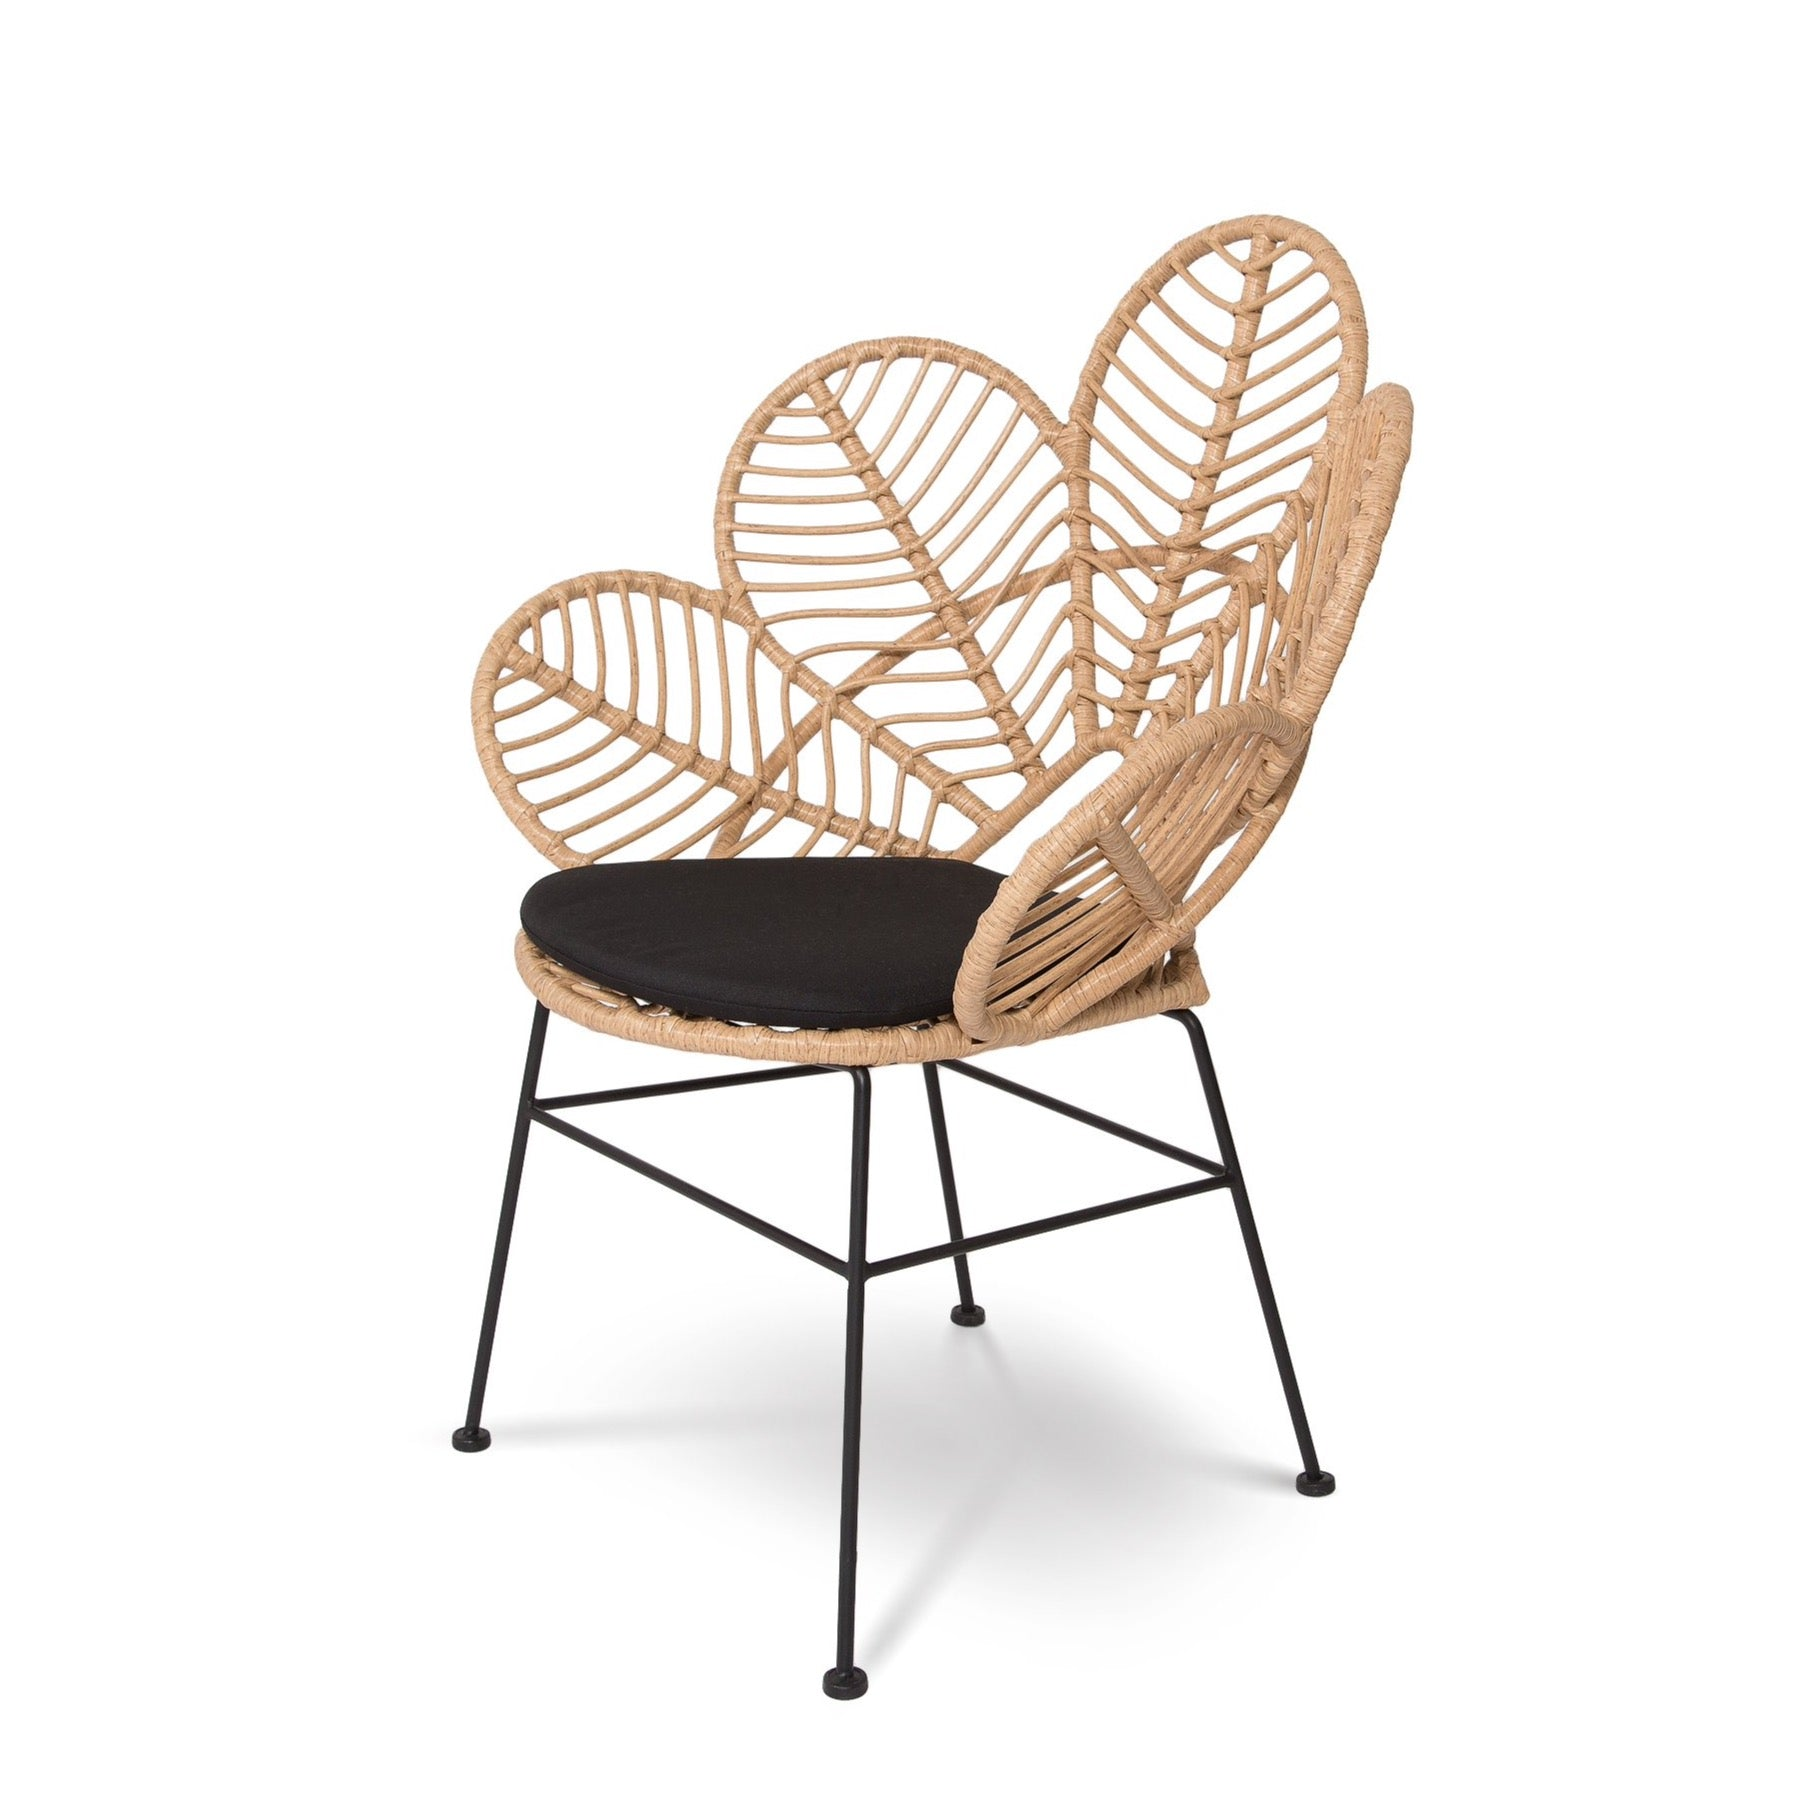 Calabria Lotus Chair